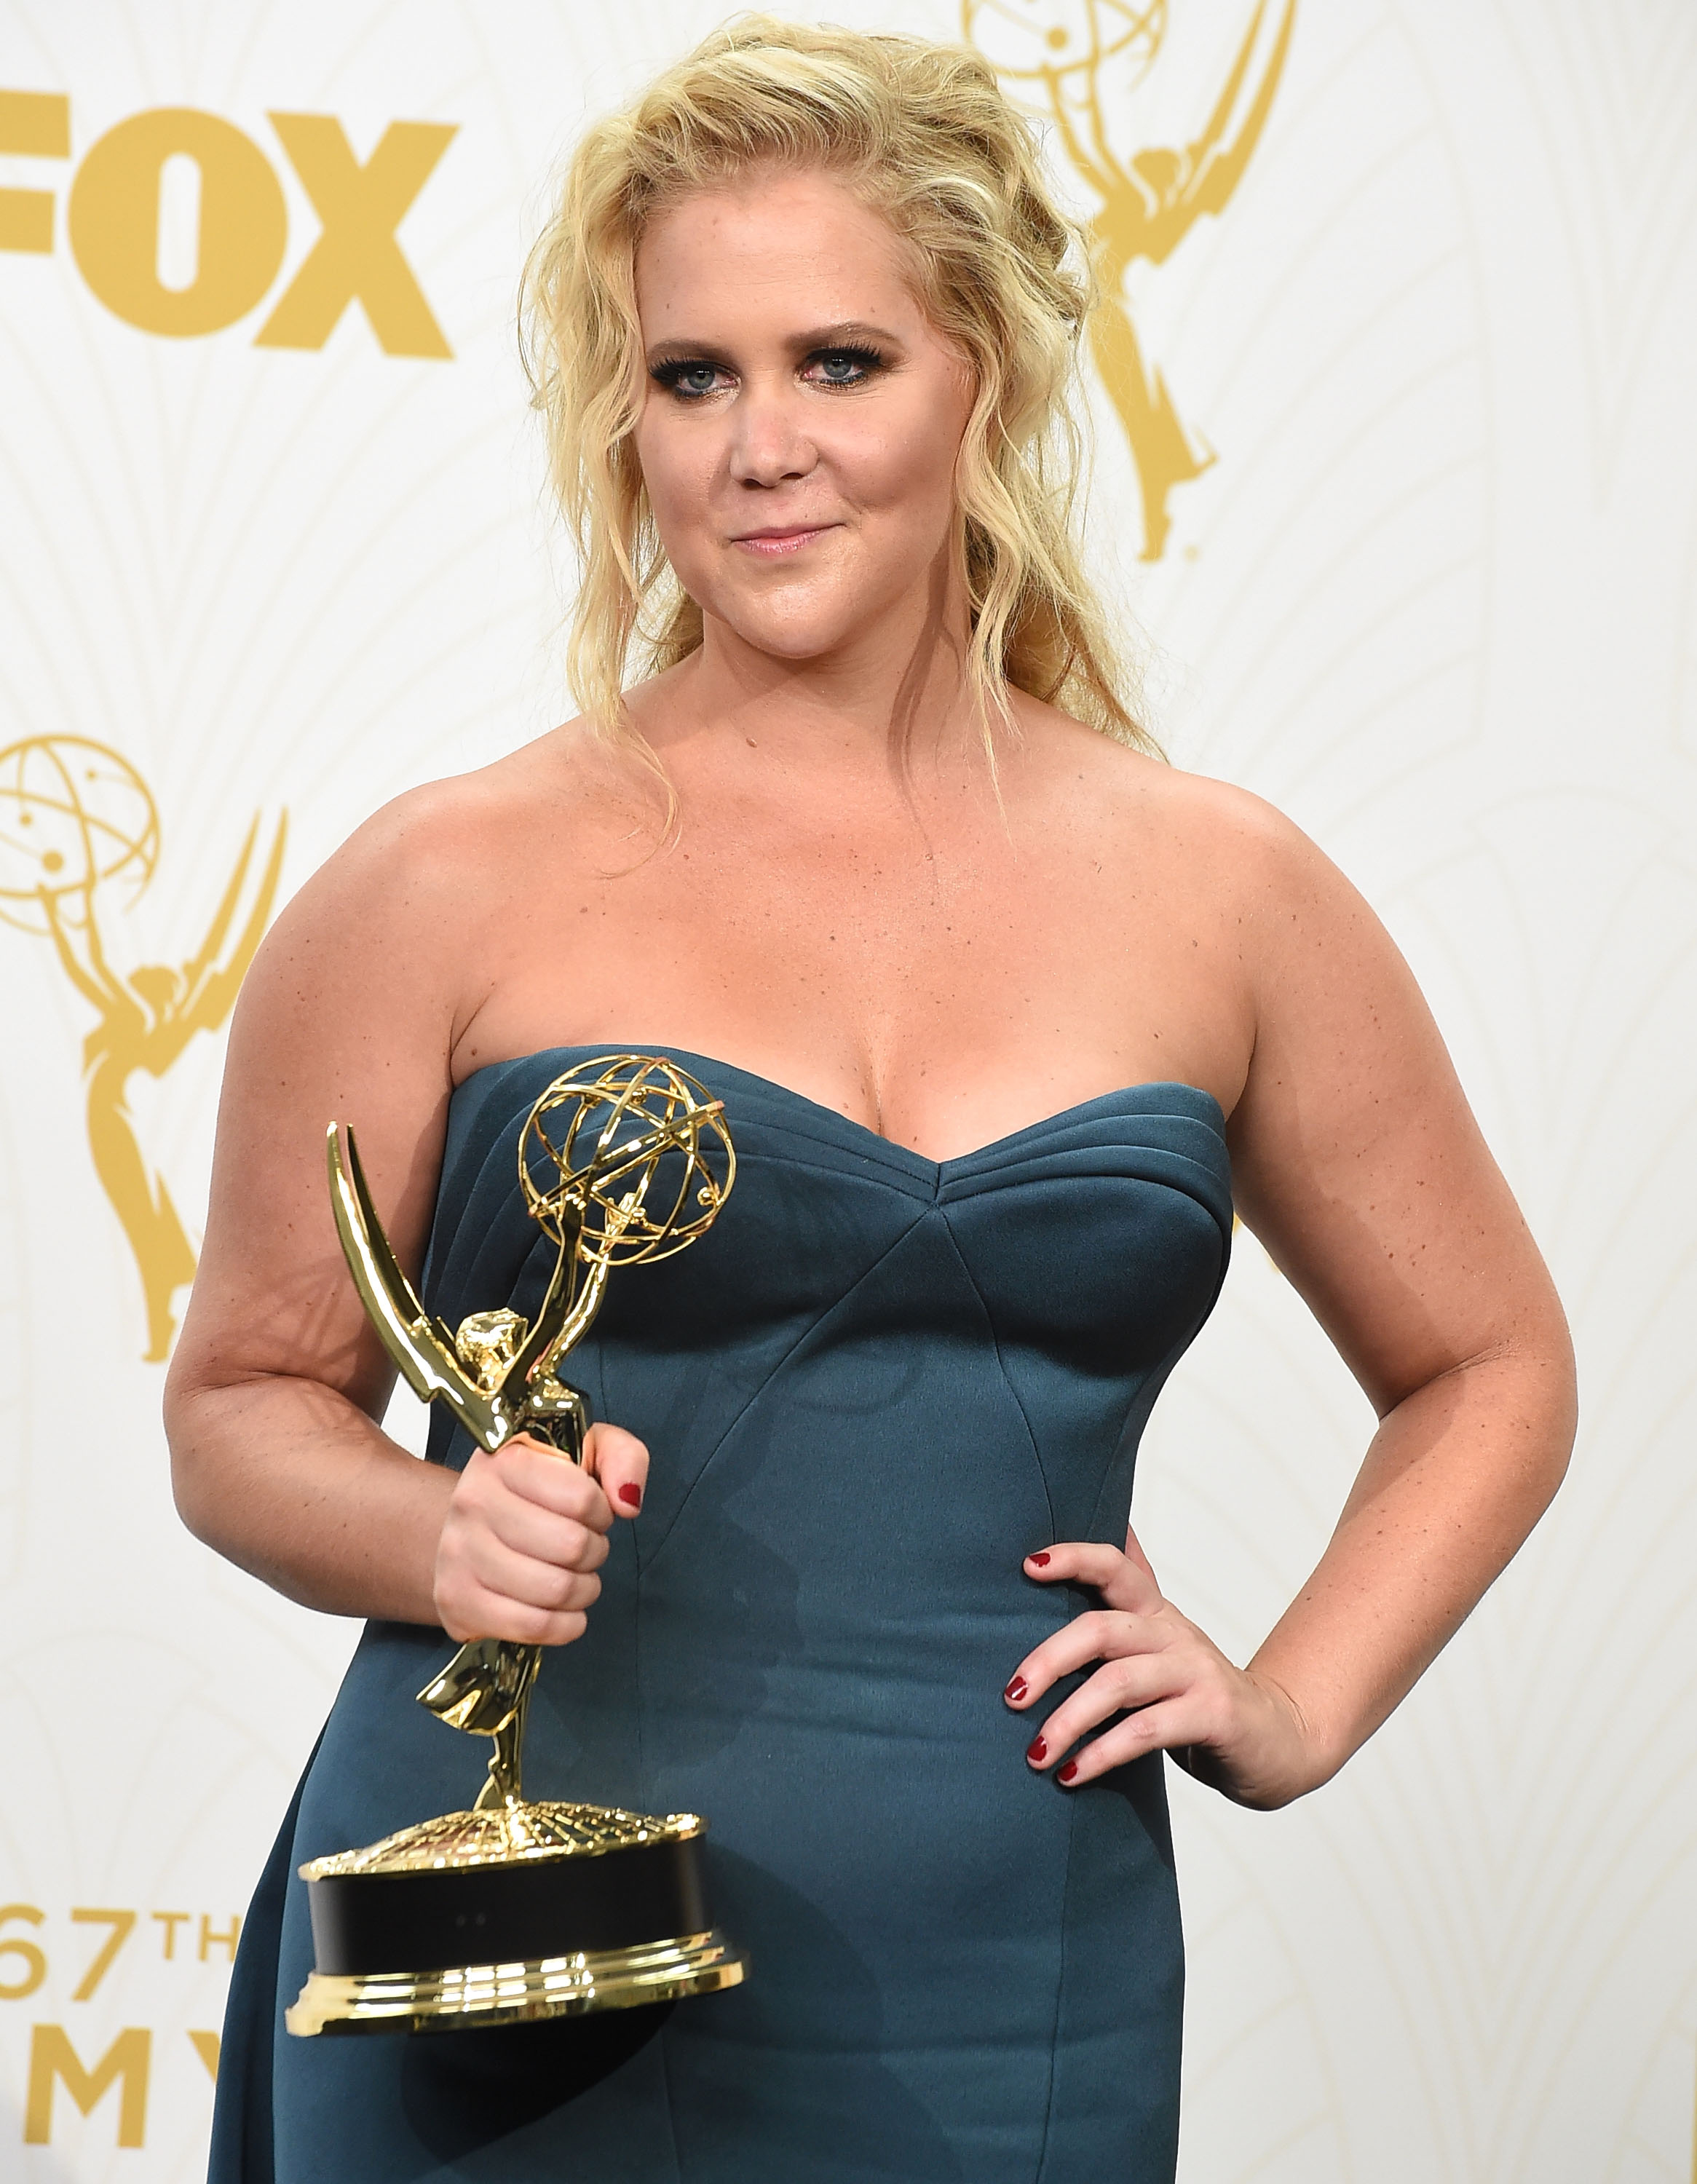 Amy Schumer poses at the 67th Annual Primetime Emmy Awards at Microsoft Theater on September 20, 2015 in Los Angeles, California.